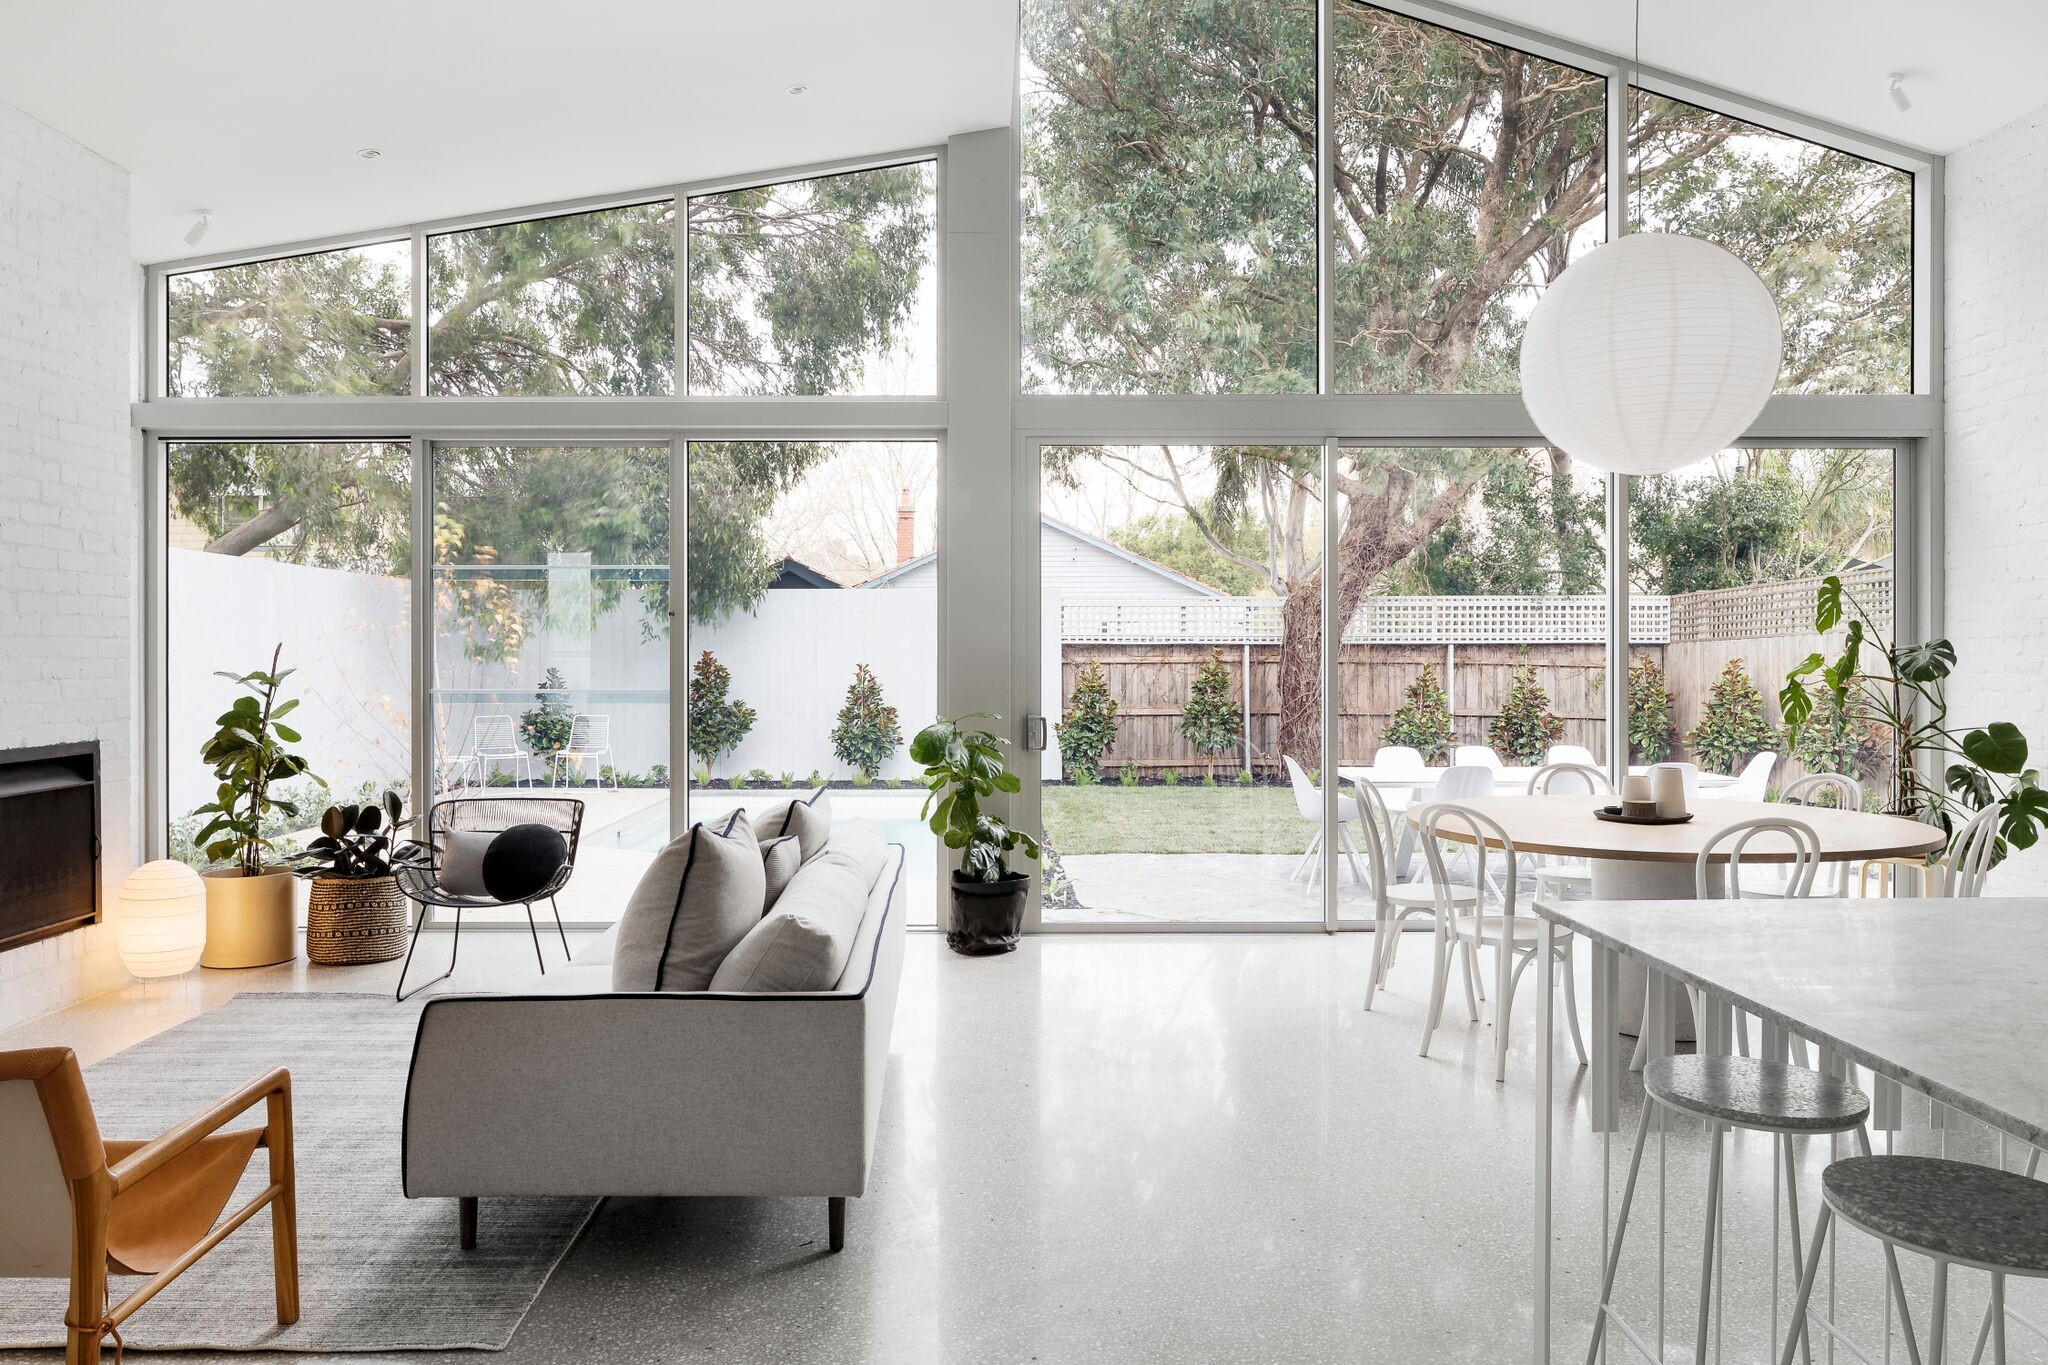 Gallery Of Build Her Collective Local Australian Residential Architecture & Design Melbourne, Vic Image 14